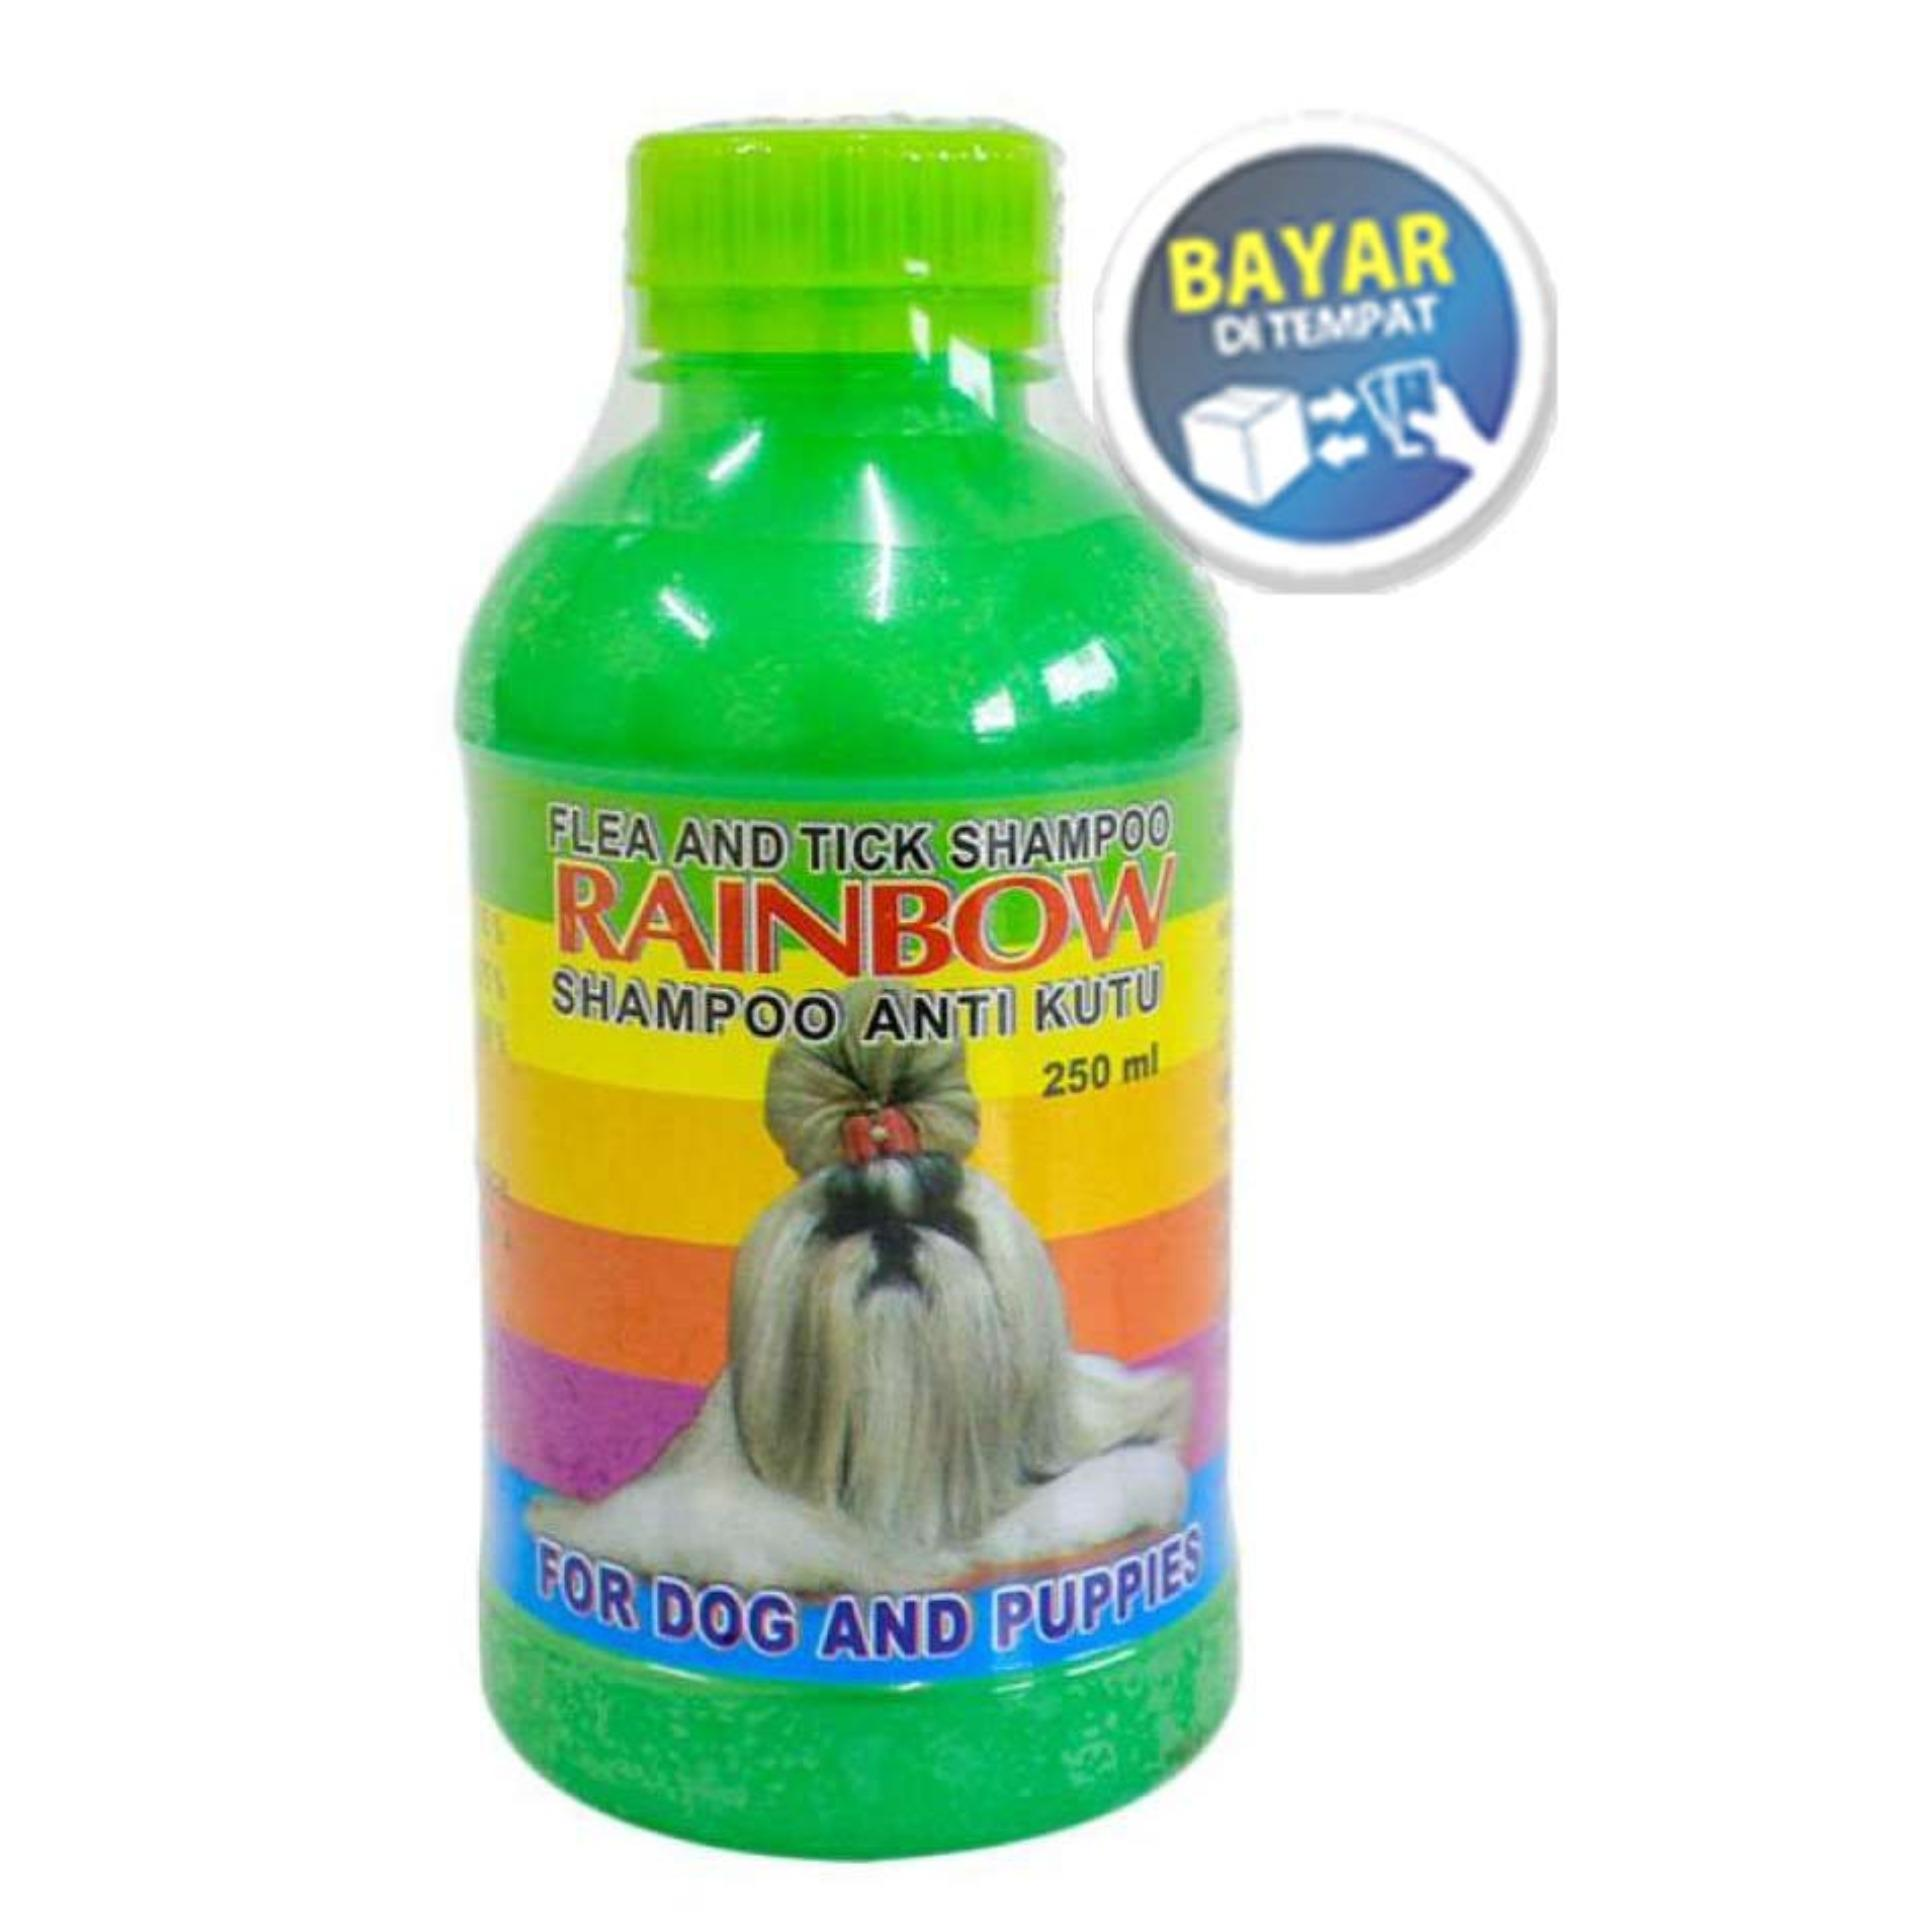 Shampoo Anti Kutu Anjing & Flea Rainbow Ukuran 250ml Hijau By Banyu Shop.